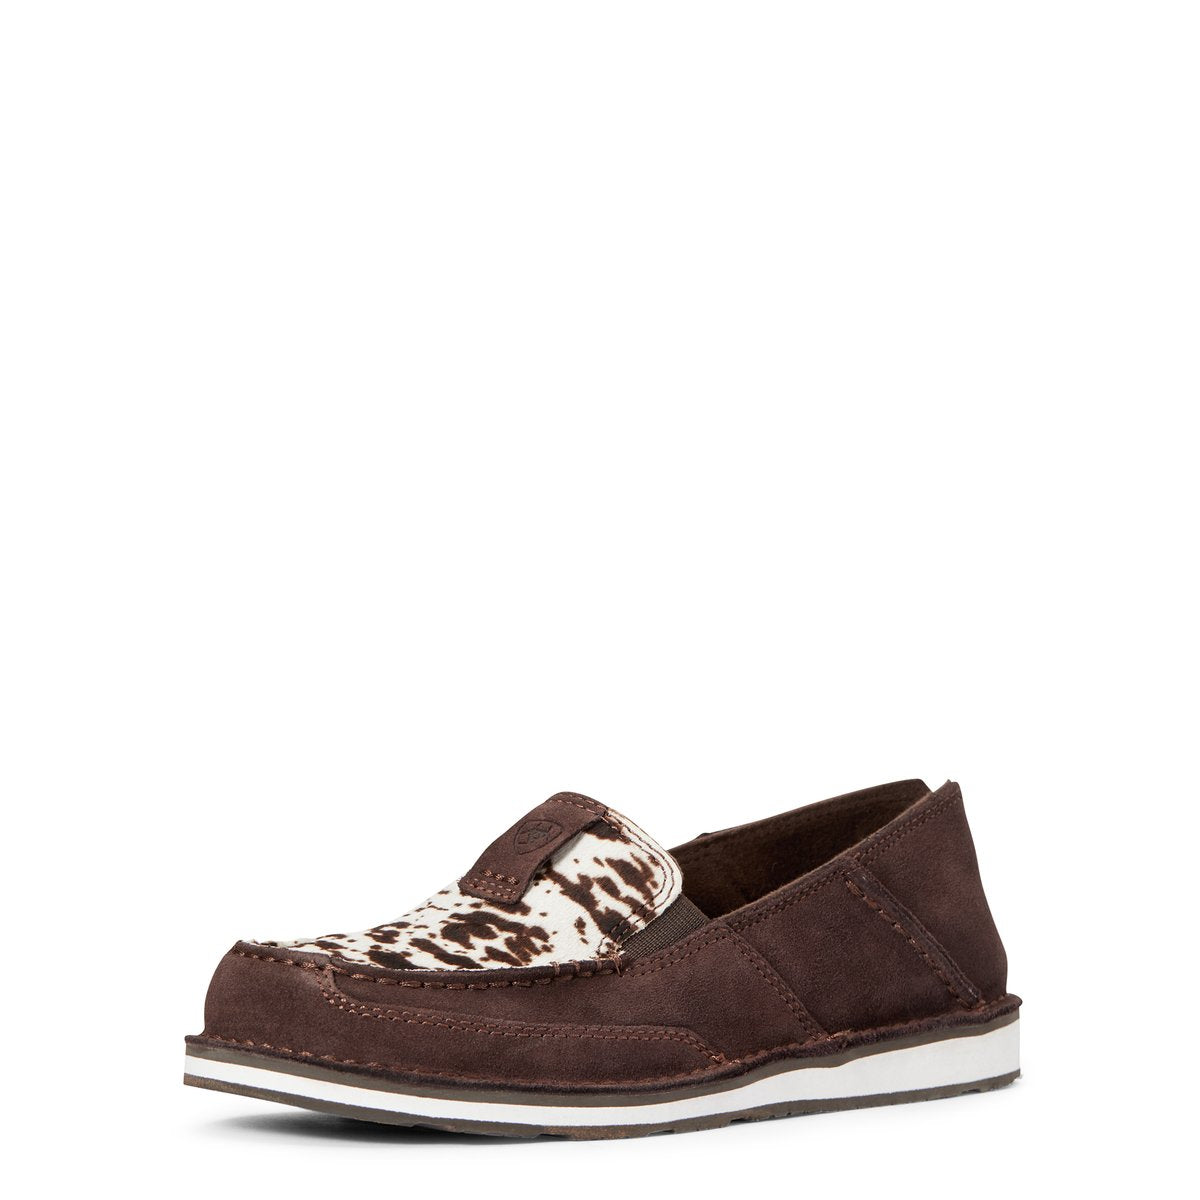 Ariat Womens Cruiser Chocolate Chip Suede Slip On 10033932